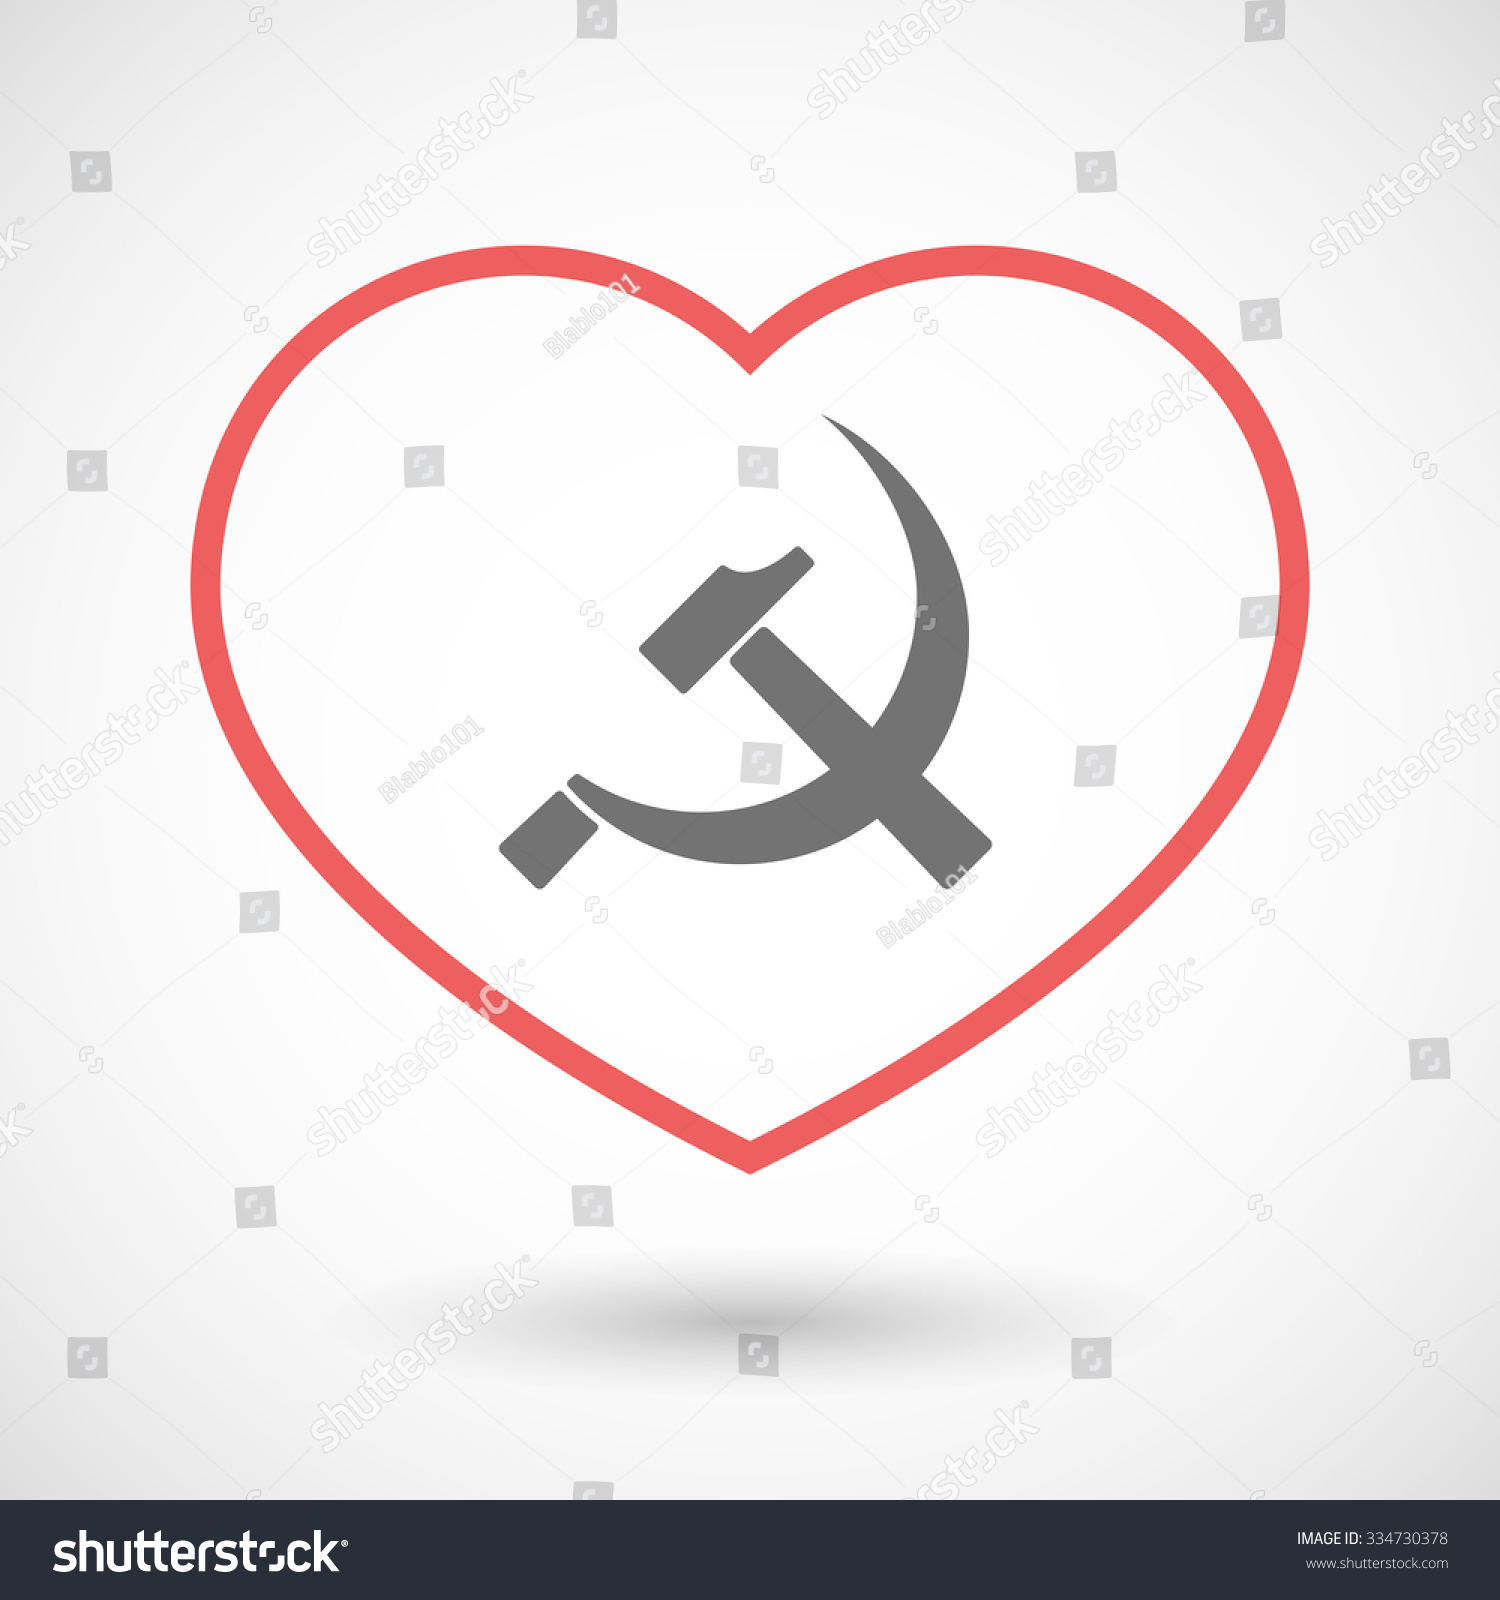 Illustration Line Hearth Icon Communist Symbol Stock Vector Royalty